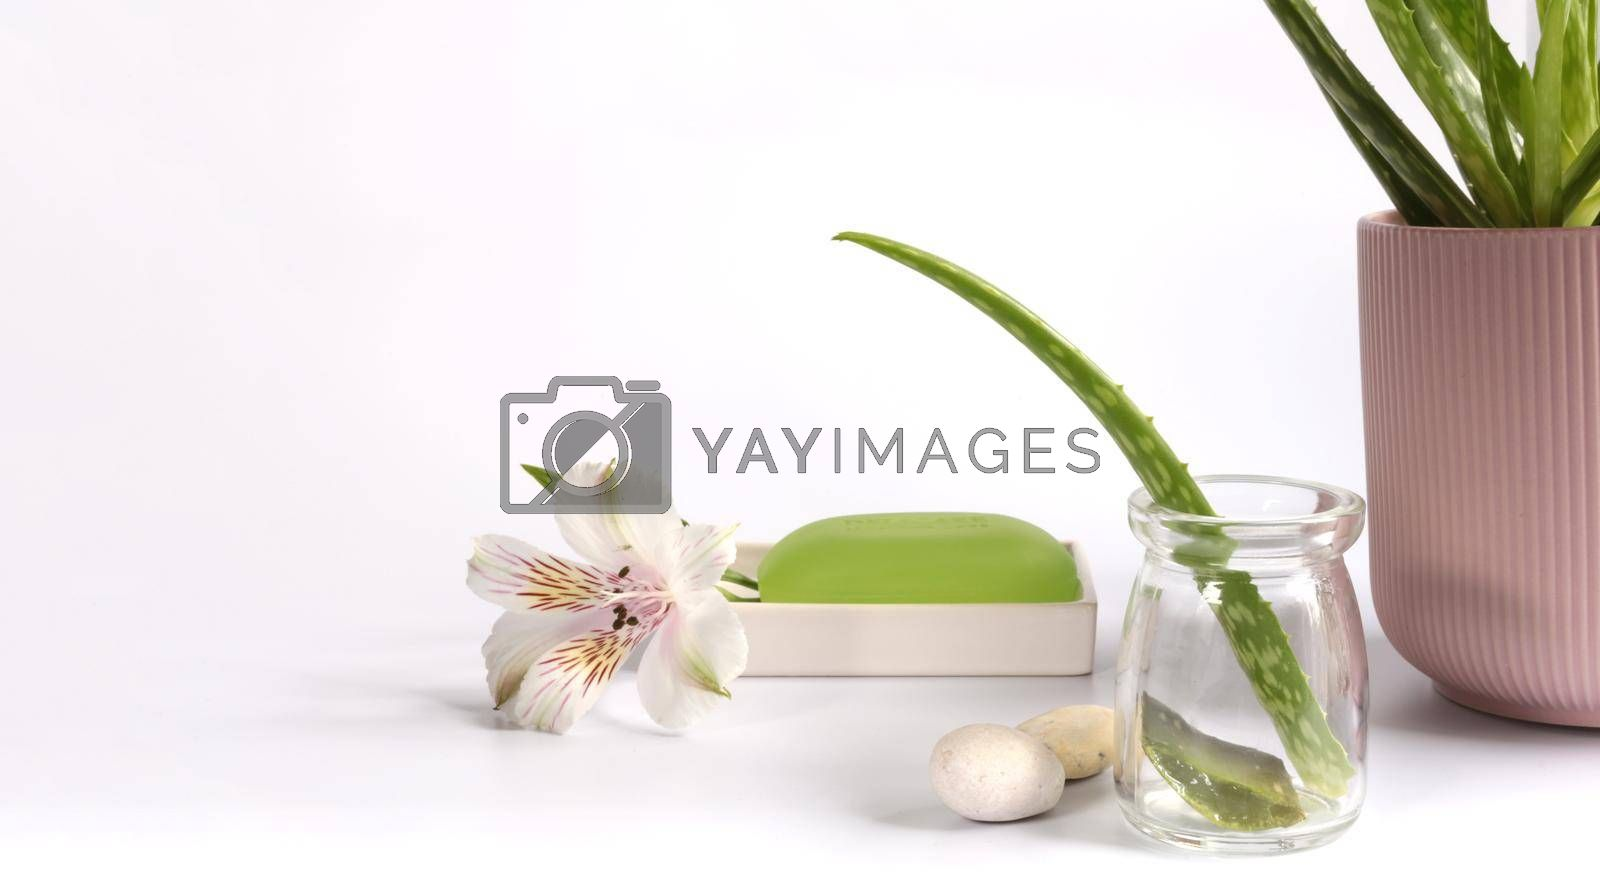 Aloe Vera leaf, sliced aloe vera plant with spa background over white